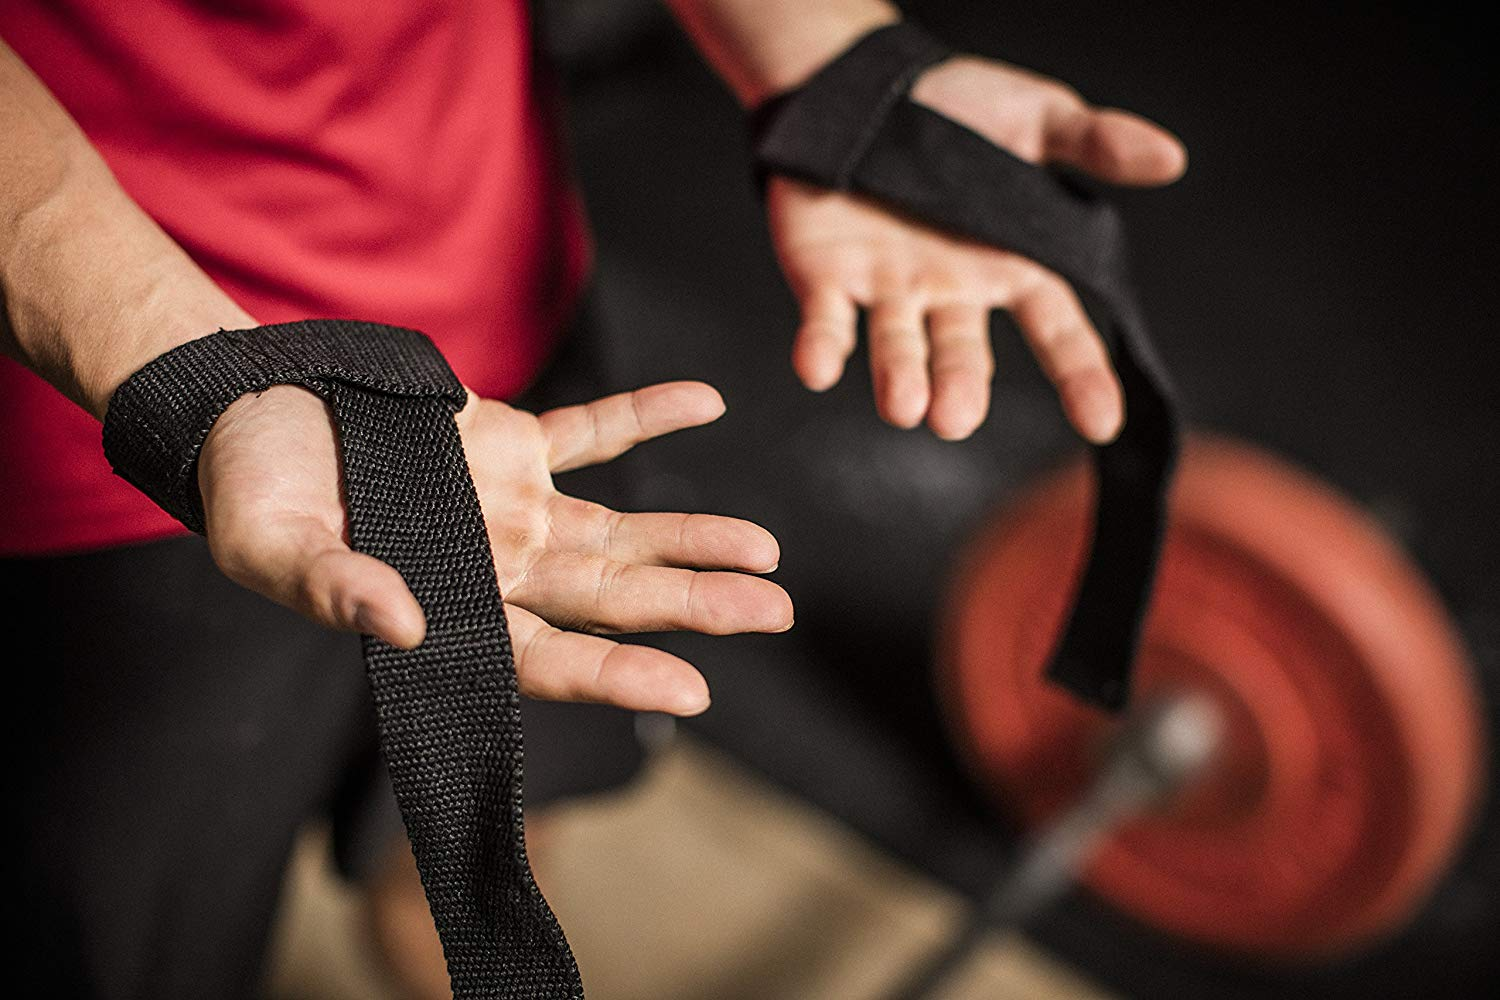 Pair Harbinger Padded Cotton Lifting Wrist Straps with NeoTek Cushioned Wrist